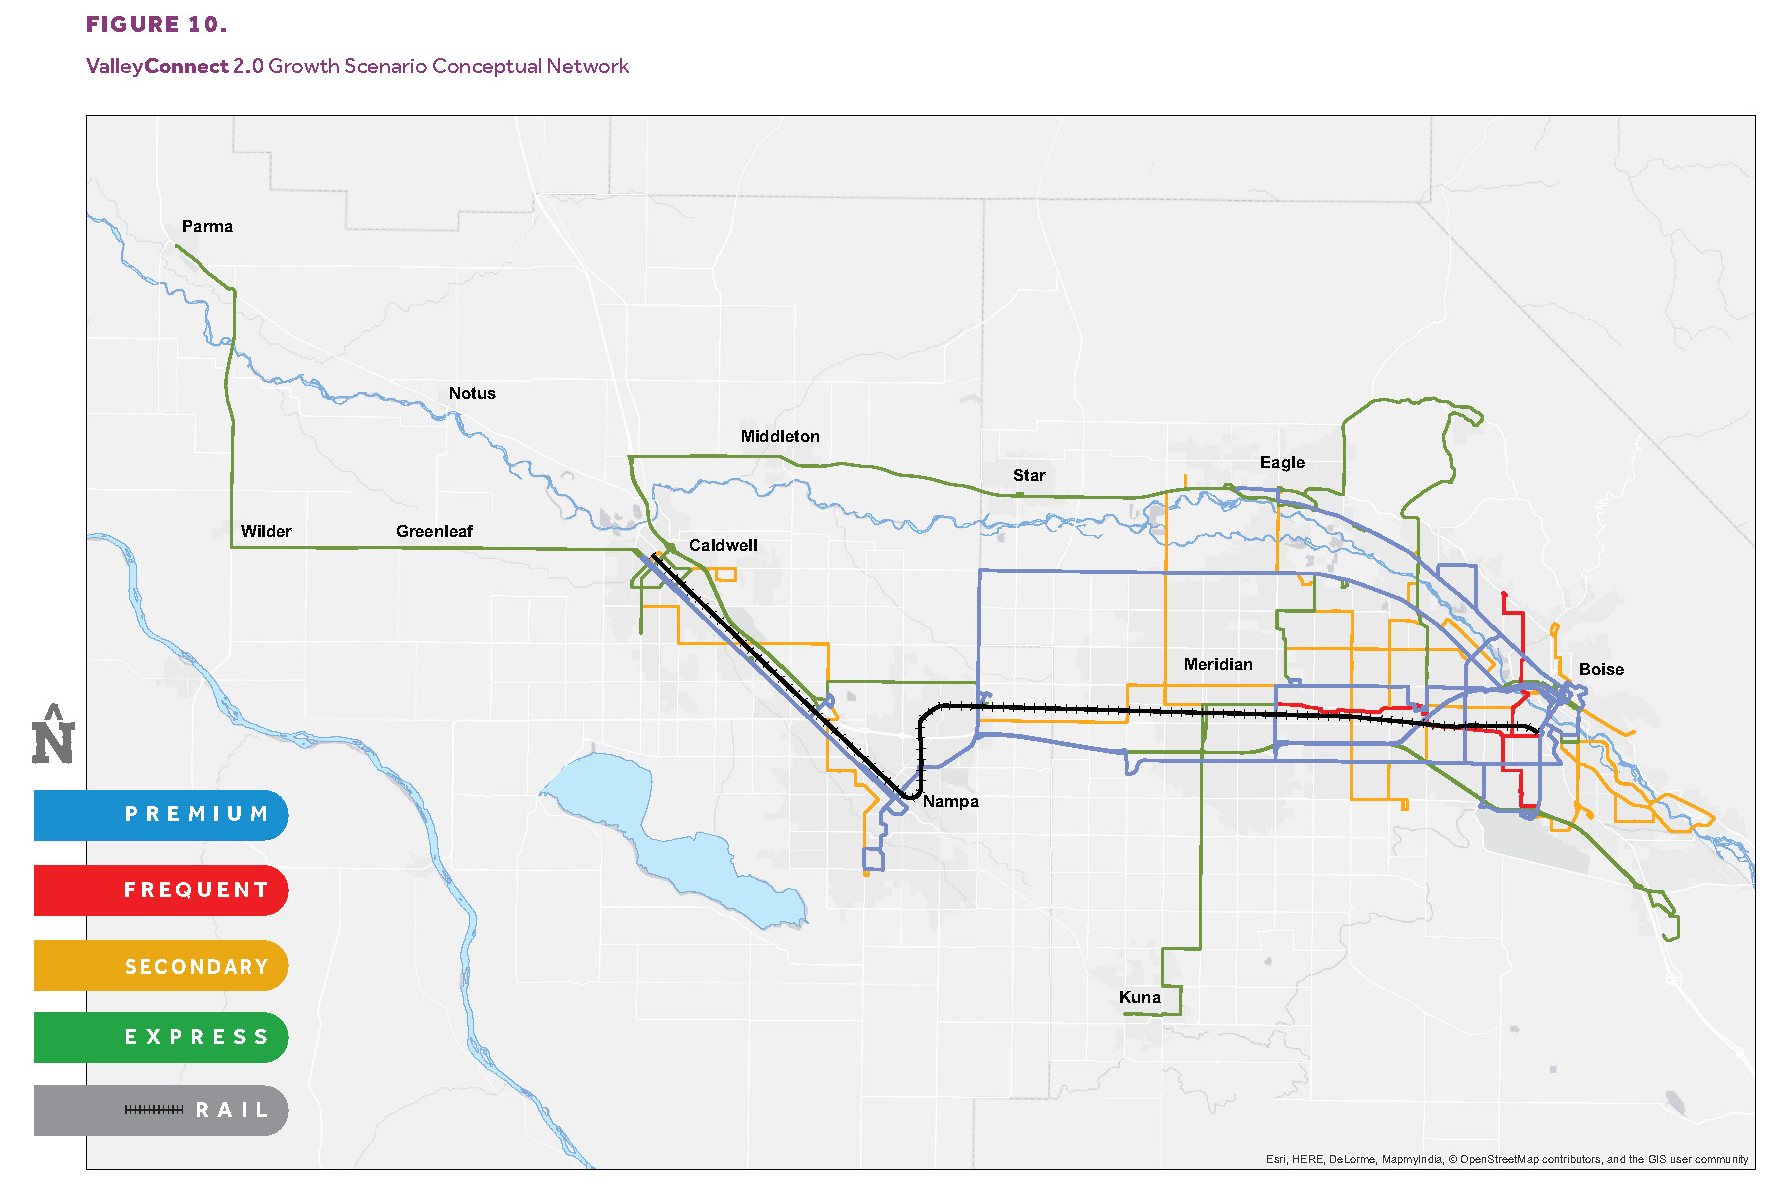 Expanding transit services under ValleyConnect 2.0